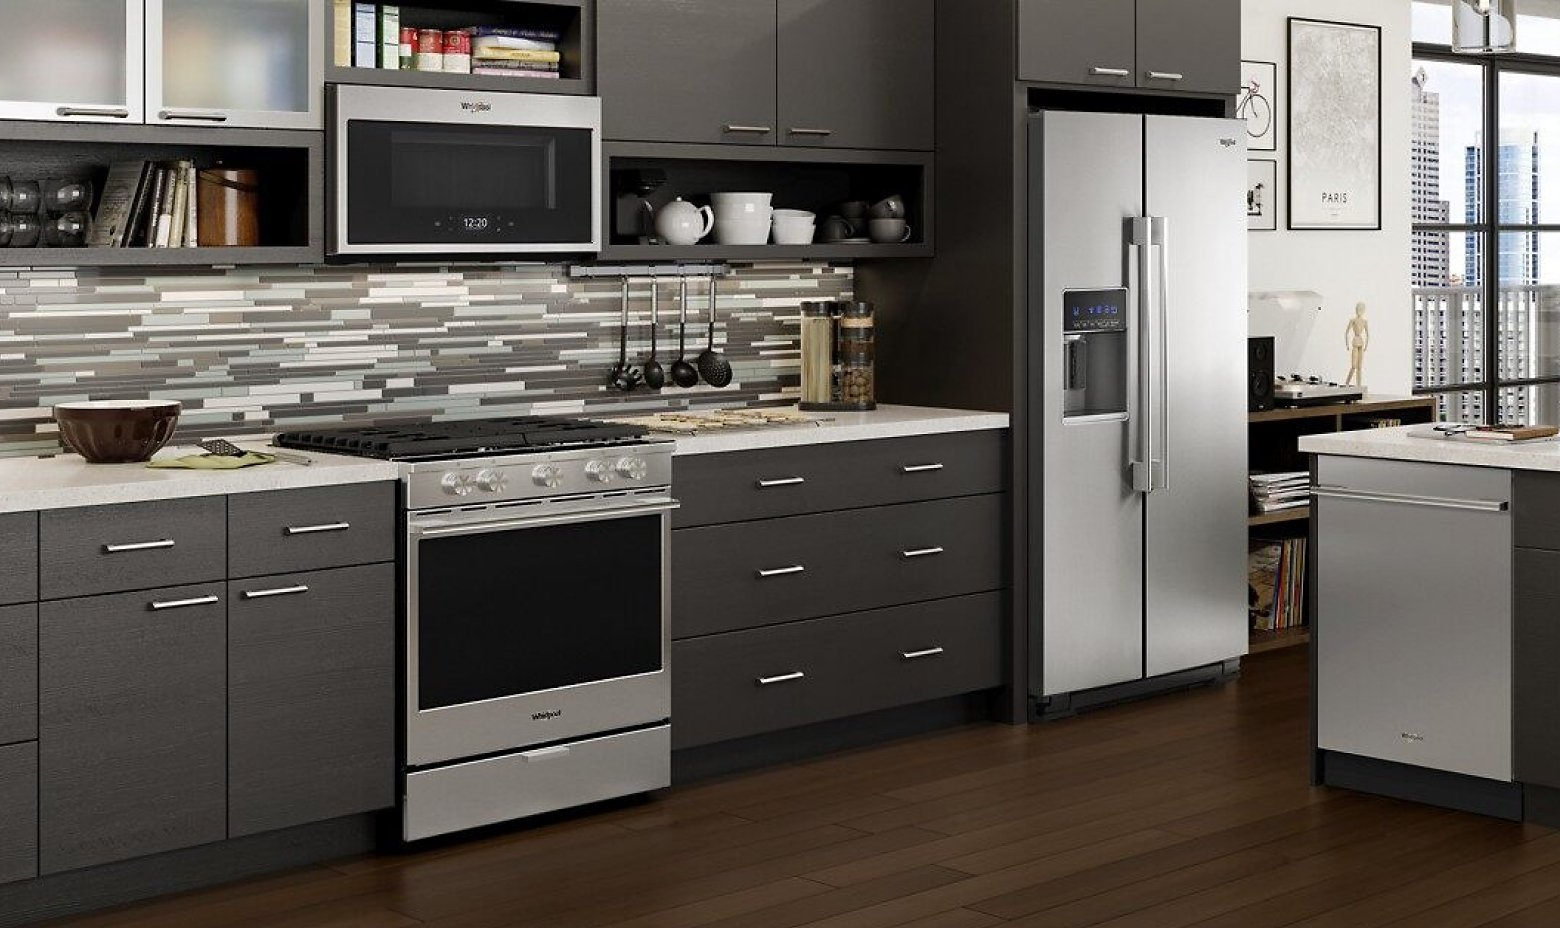 A kitchen with a slide-in range